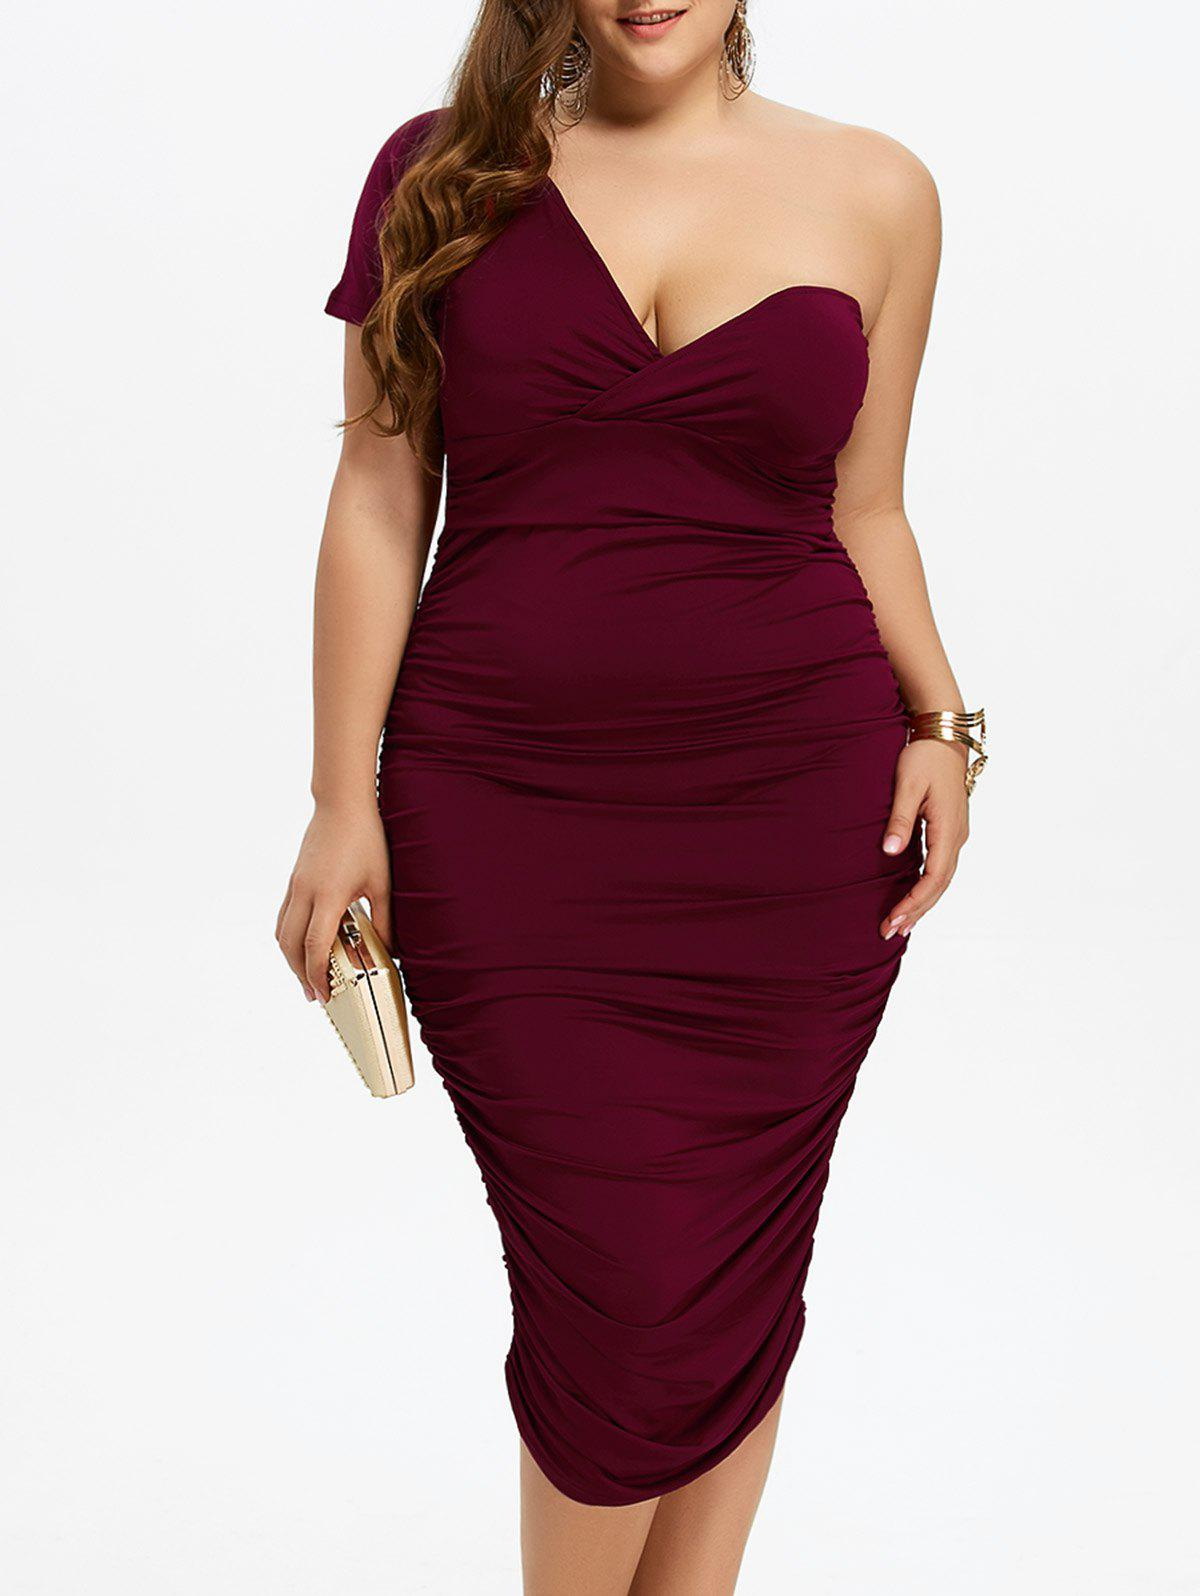 shop for genuine better price for fine quality One Shoulder Bodycon Prom Plus Size Cocktail Bandage Dress